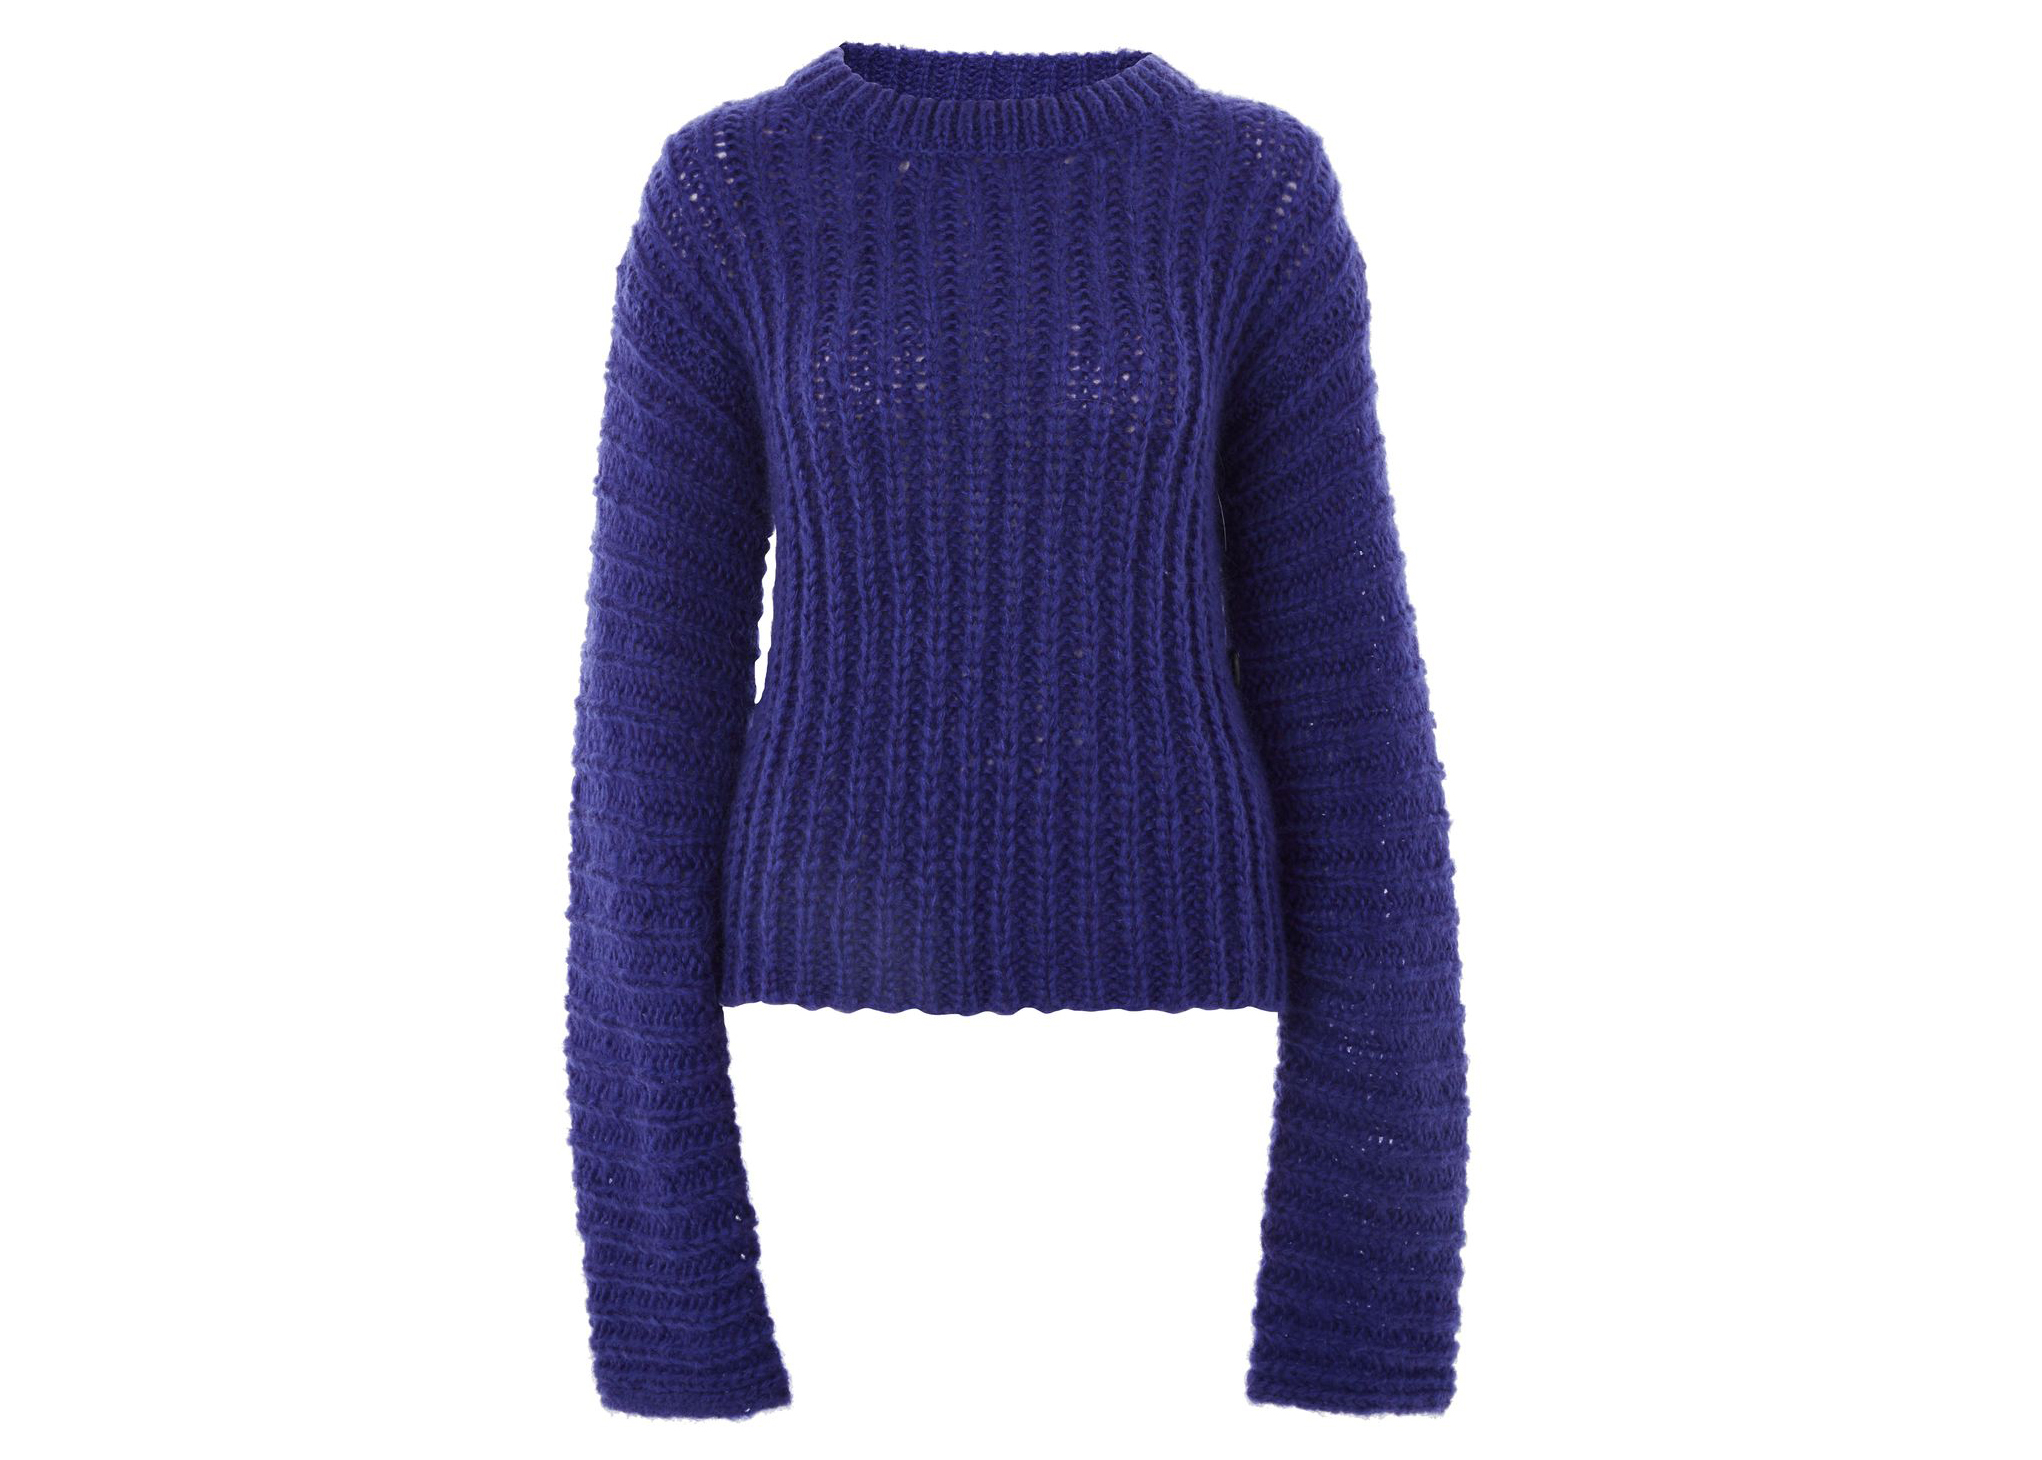 Topshop Boutique Extreme Long Sleeve Knitted Jumper